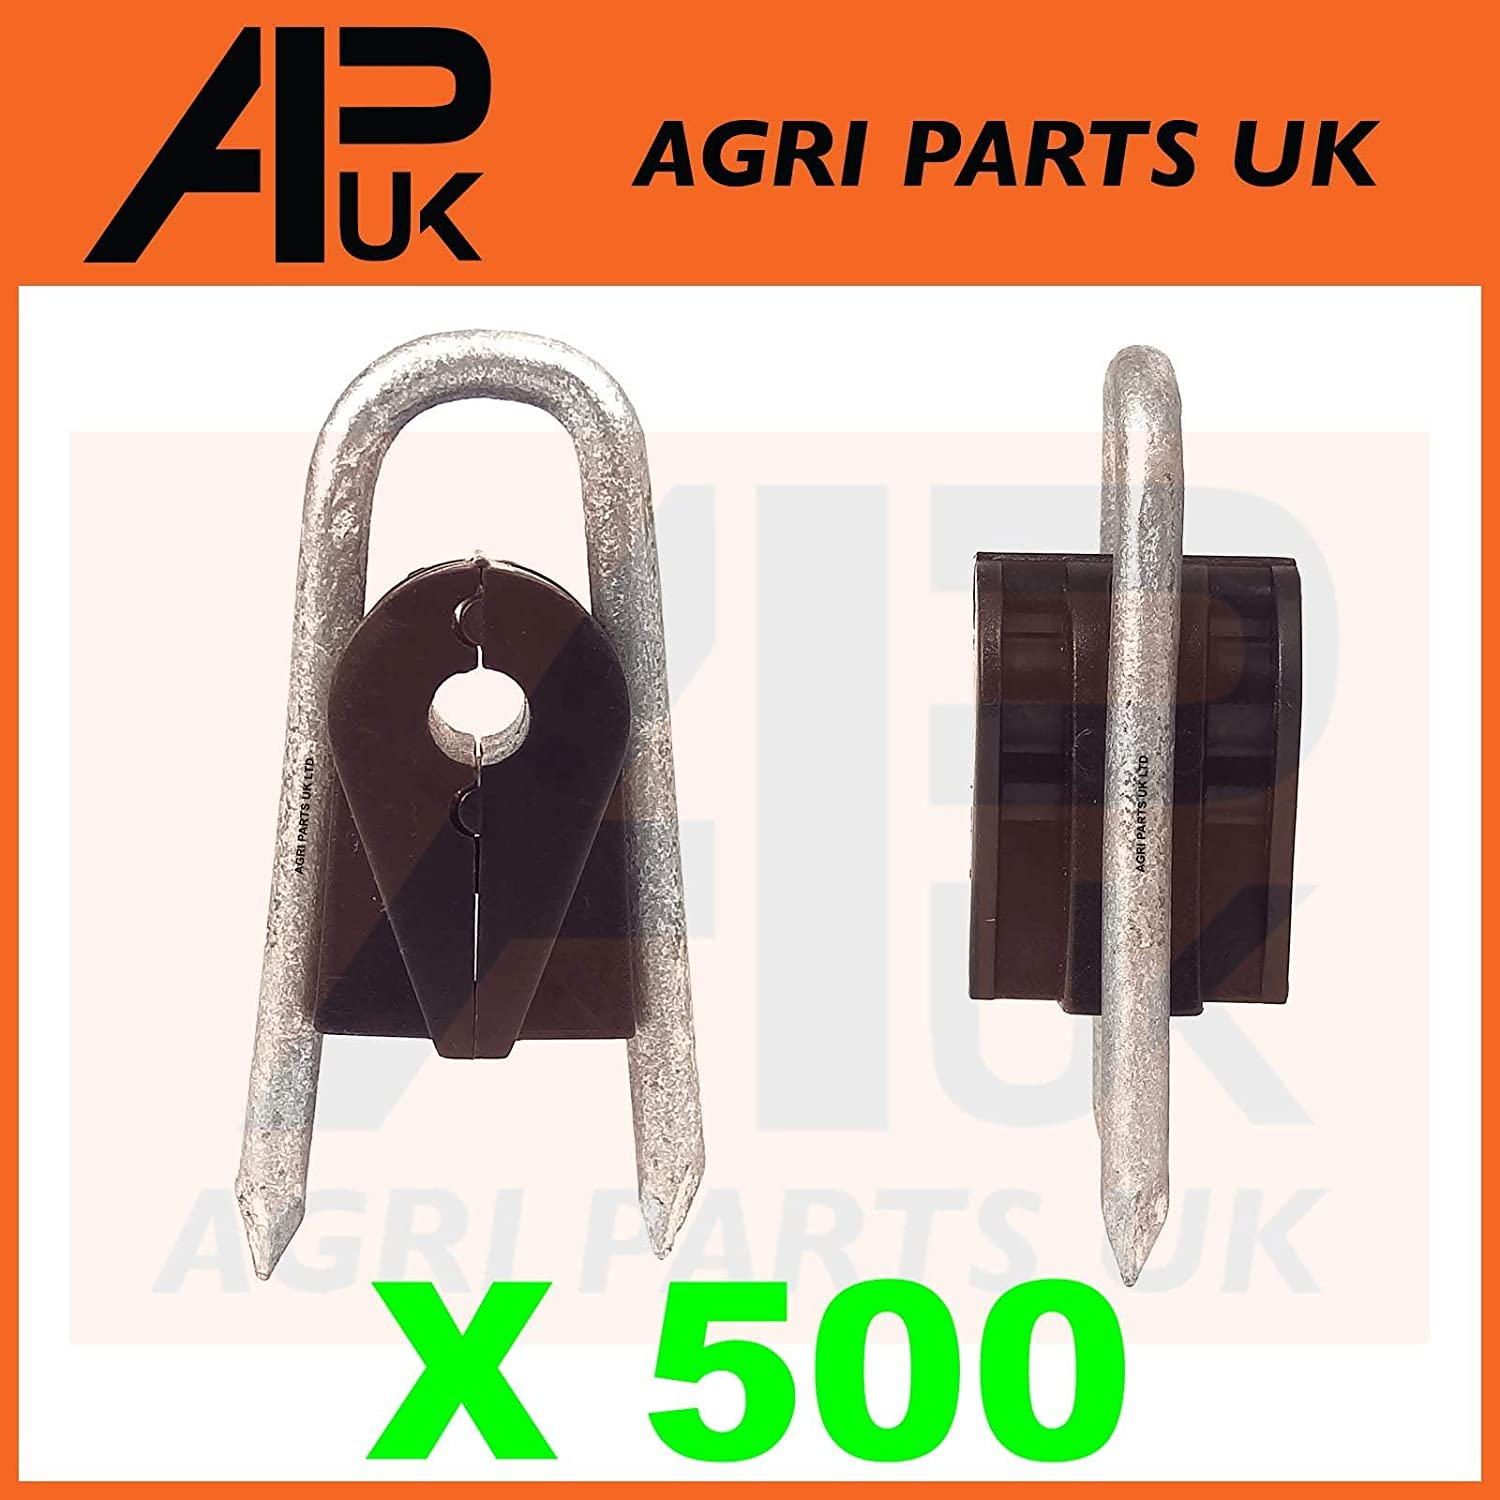 APUK 500 Electric Fence Staple on Insulators Poly Wire Rope tape Wood Post Galvanised